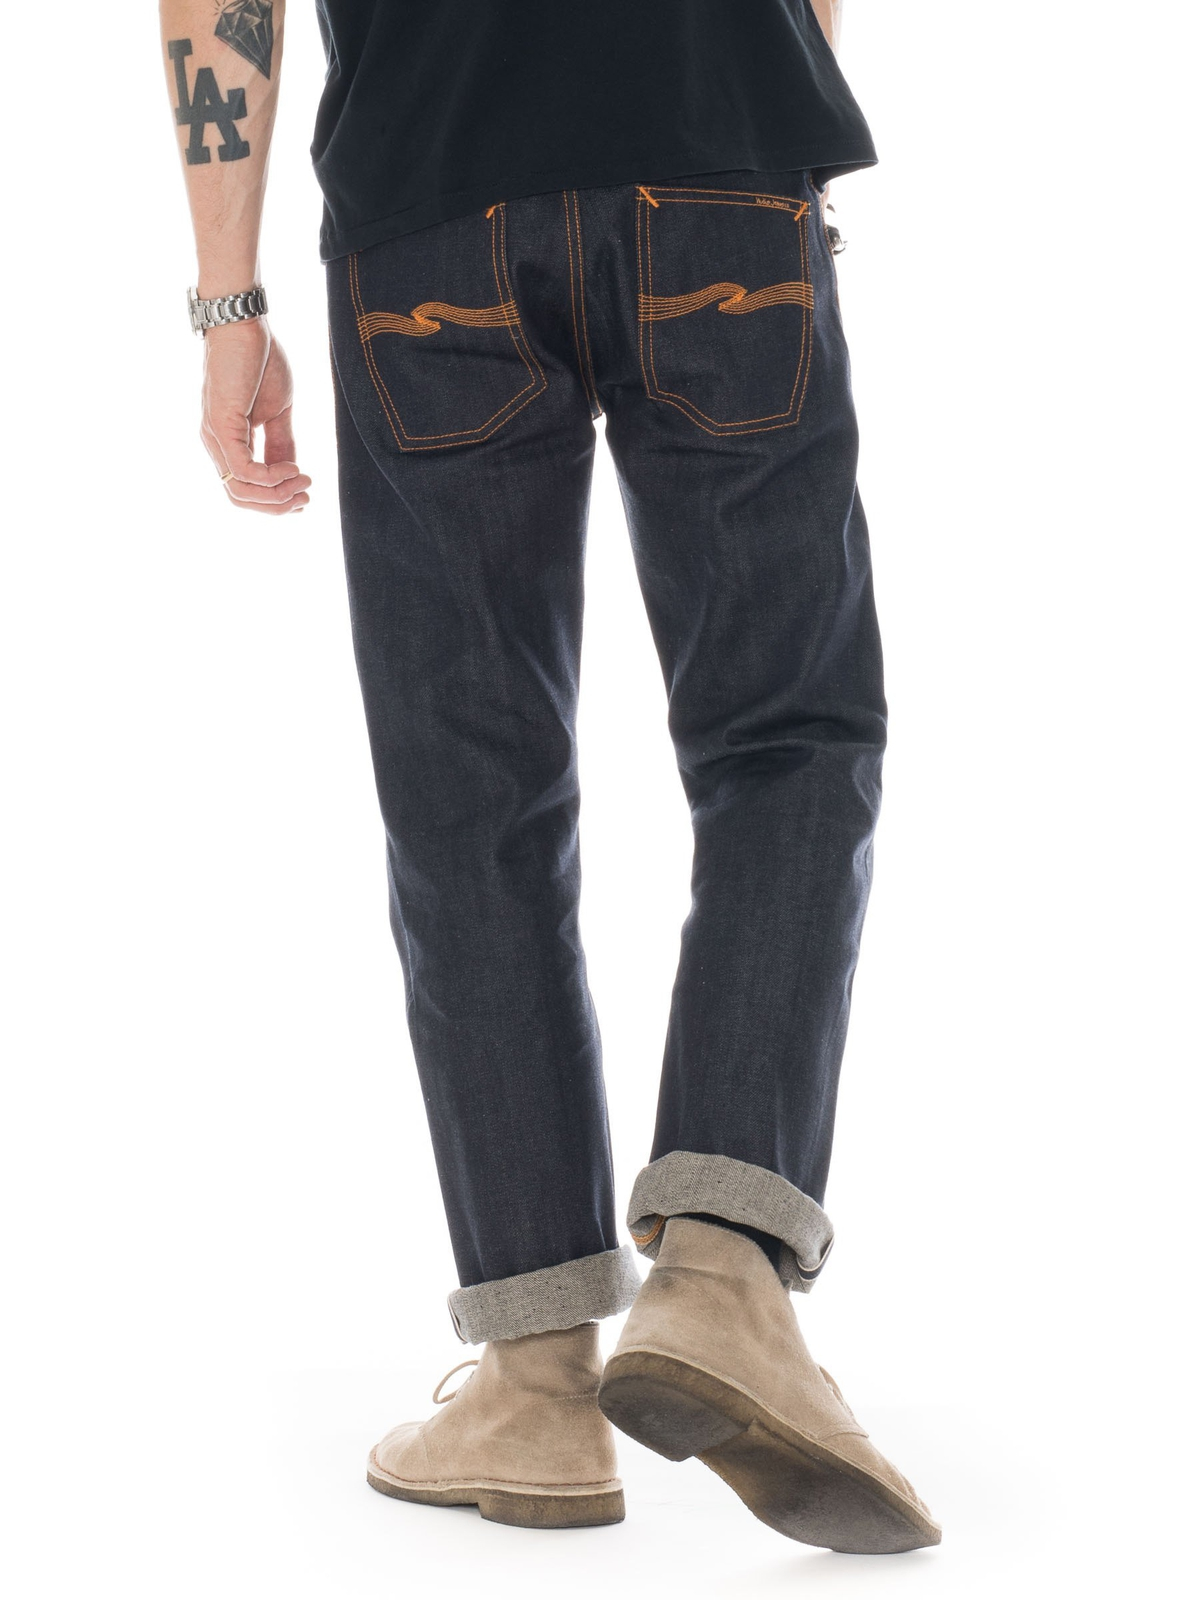 Loose Leif Dry Selvage - Nudie Jeans a54fcaeab0bf